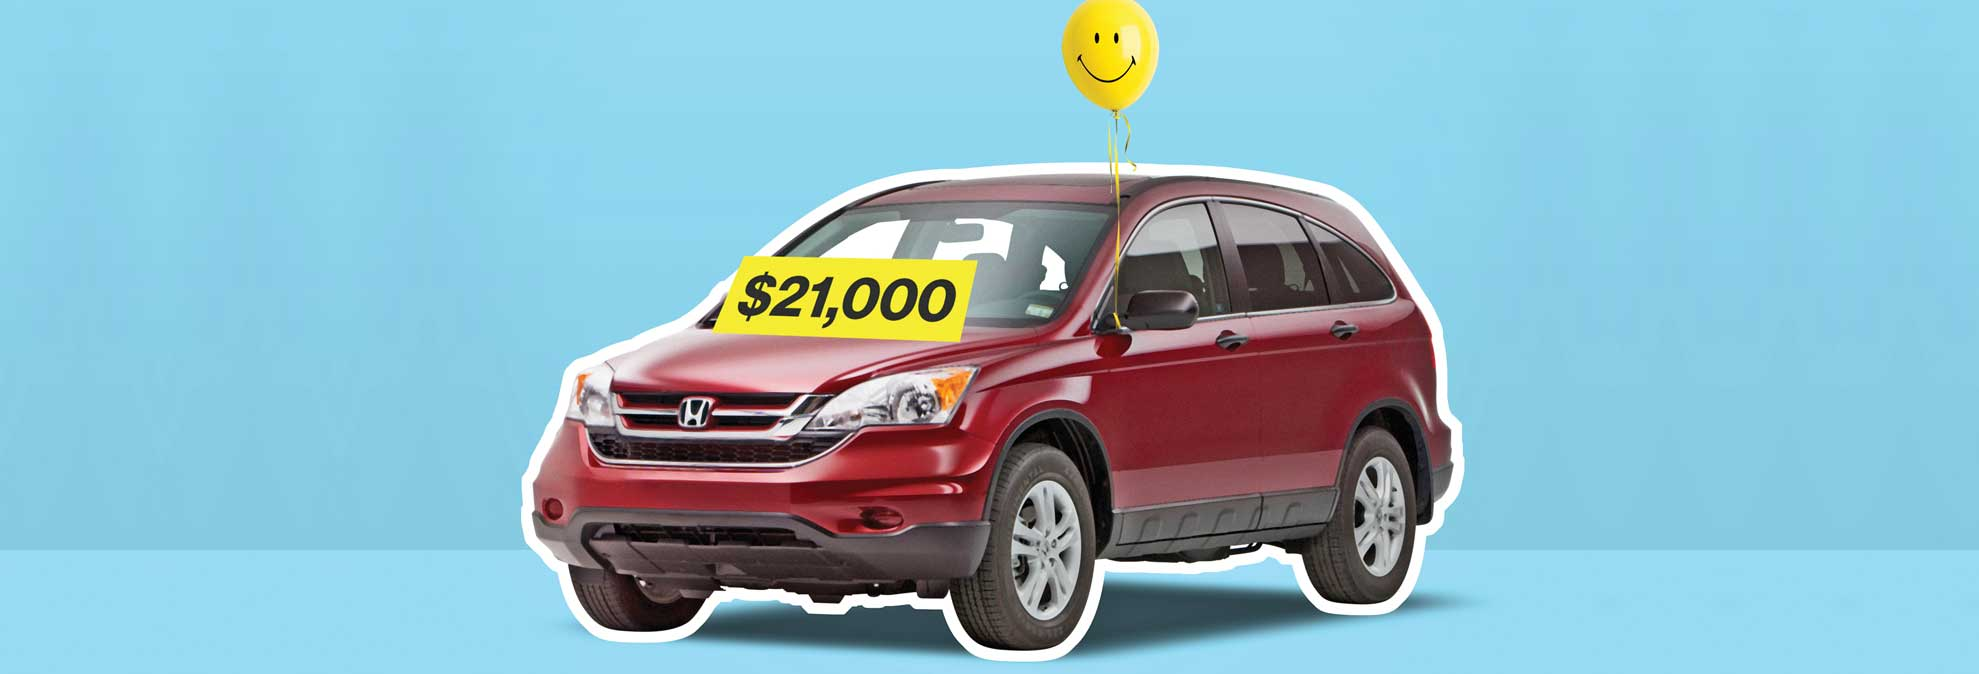 In Pursuit of Used Car Happiness - Consumer Reports